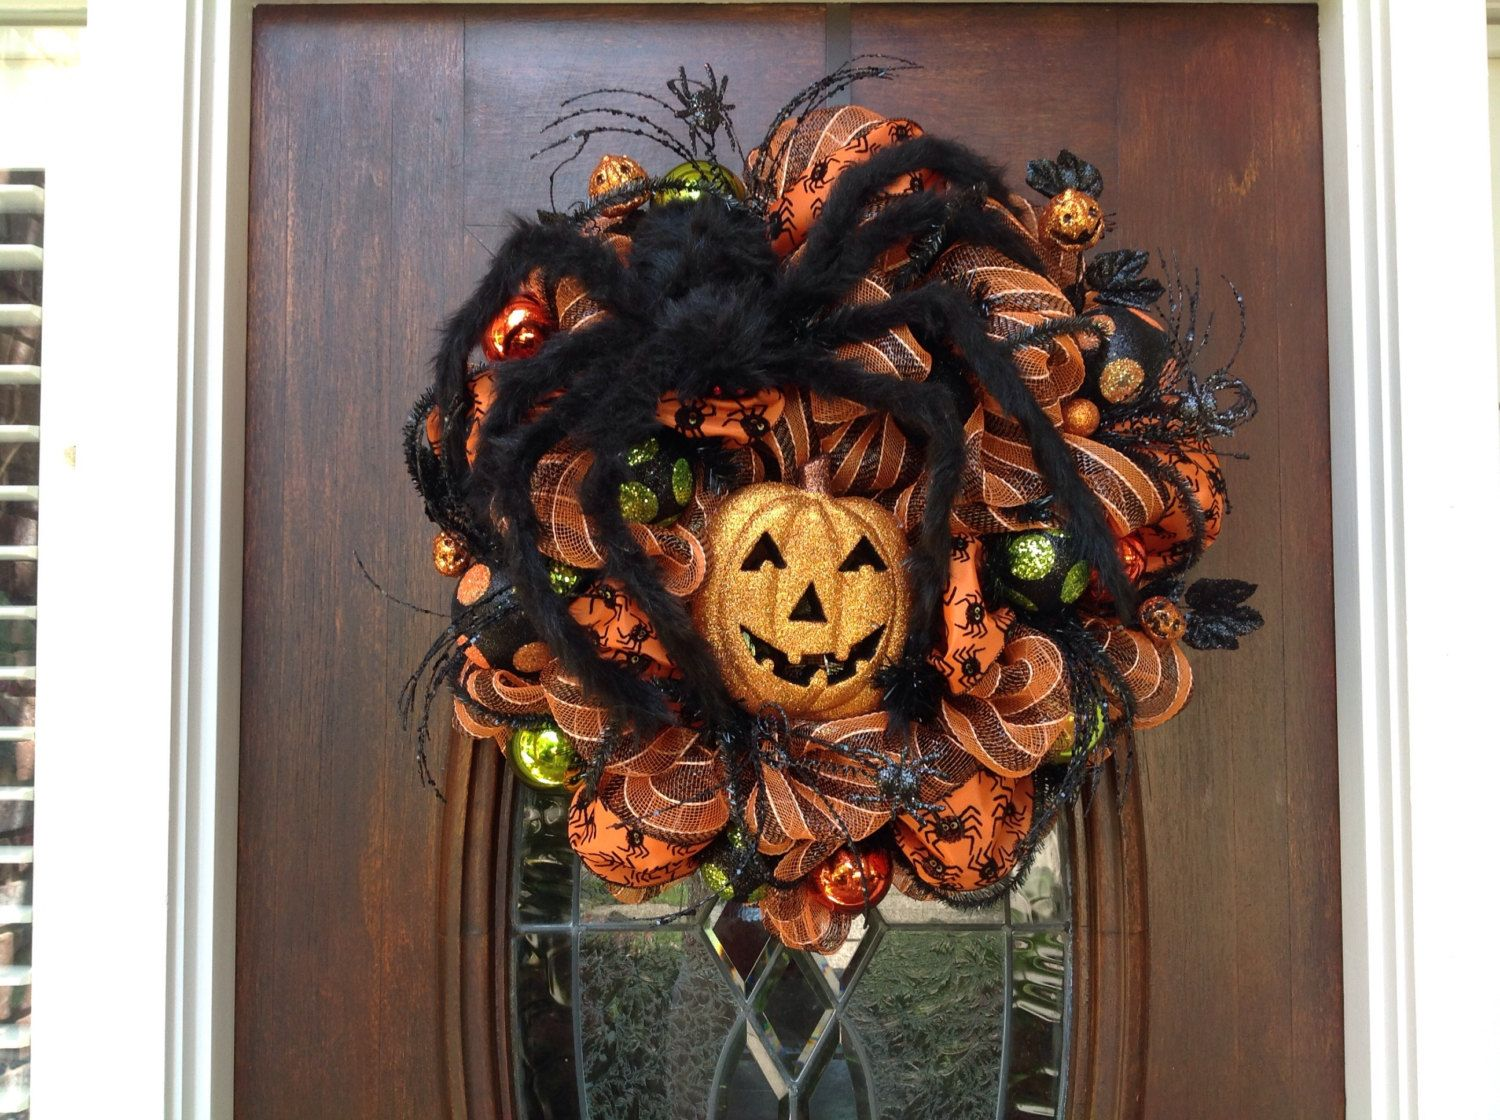 Large Spider and Pumpkin Wreath by HertasWreaths on Etsy